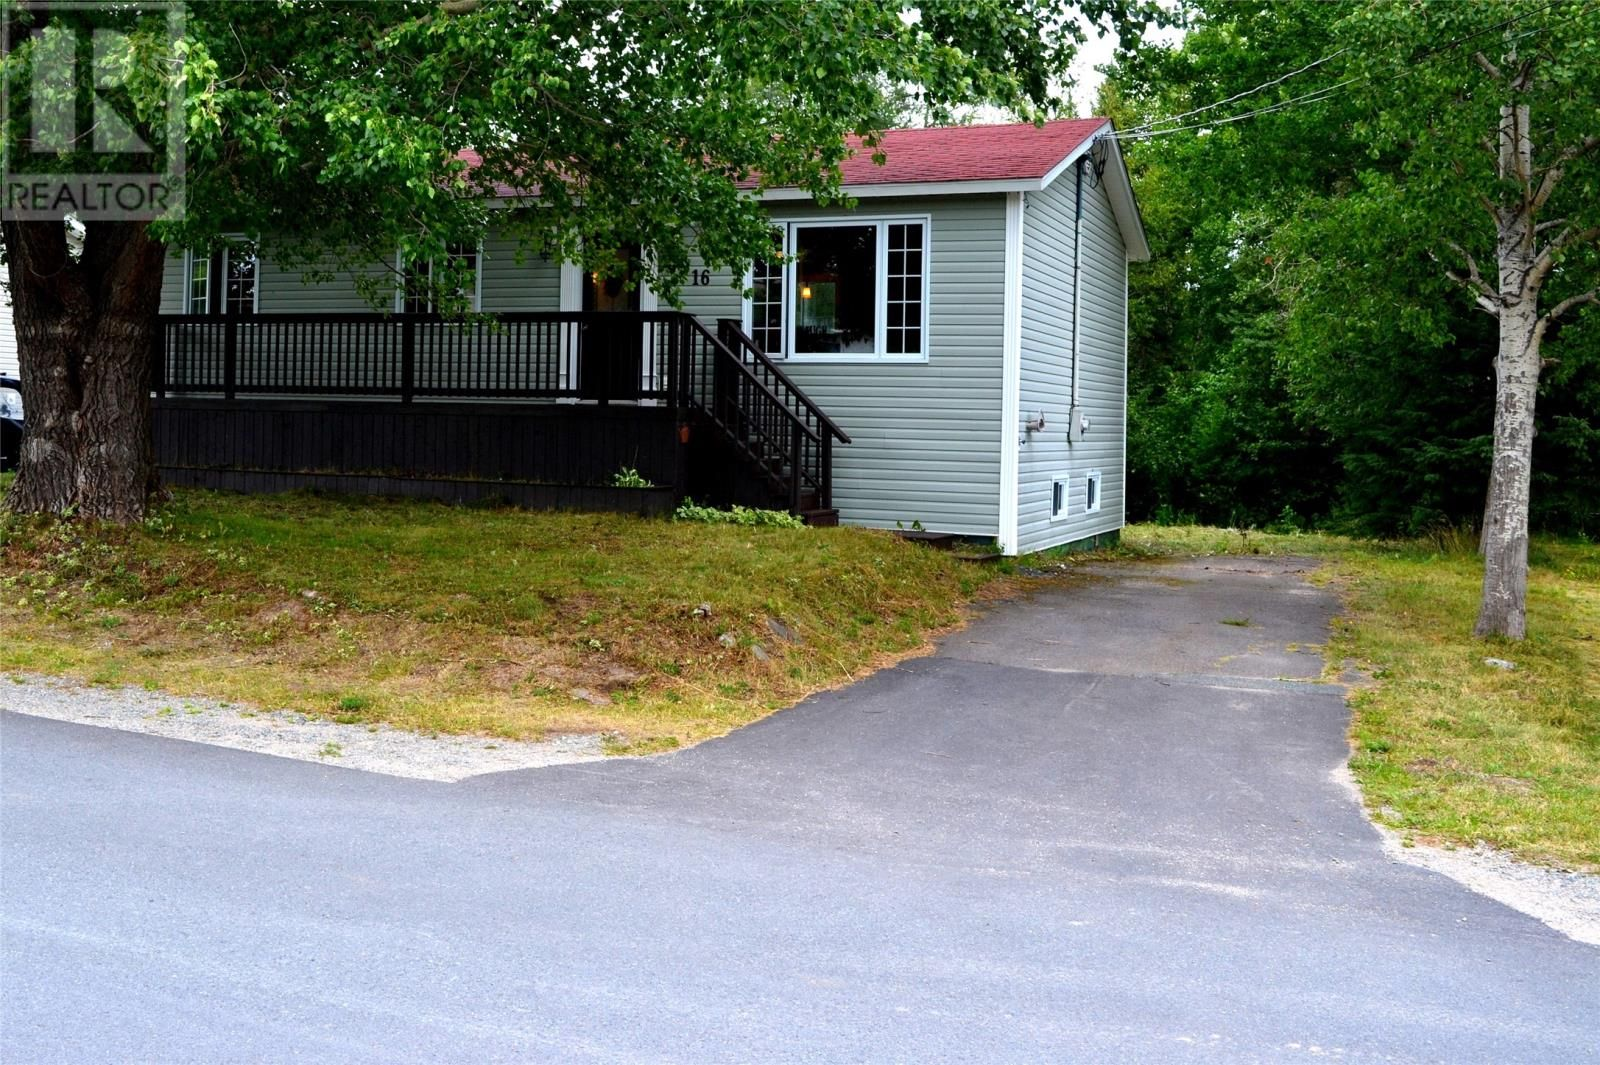 Main Photo: 16 Crewe's Road in Glovertown: House for sale : MLS®# 1236312